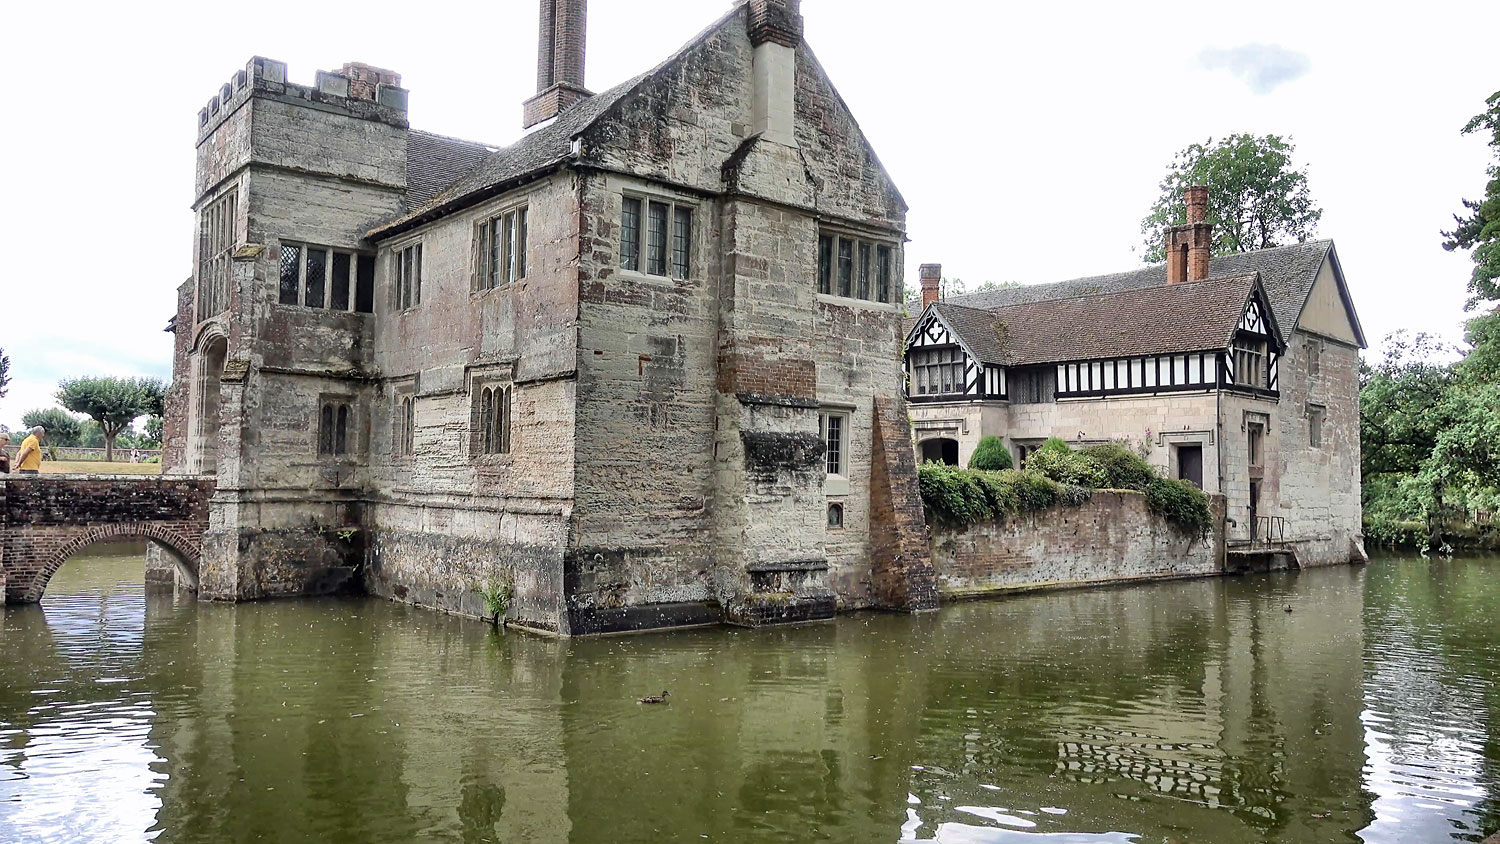 Baddesley Clinton is a moated manor house